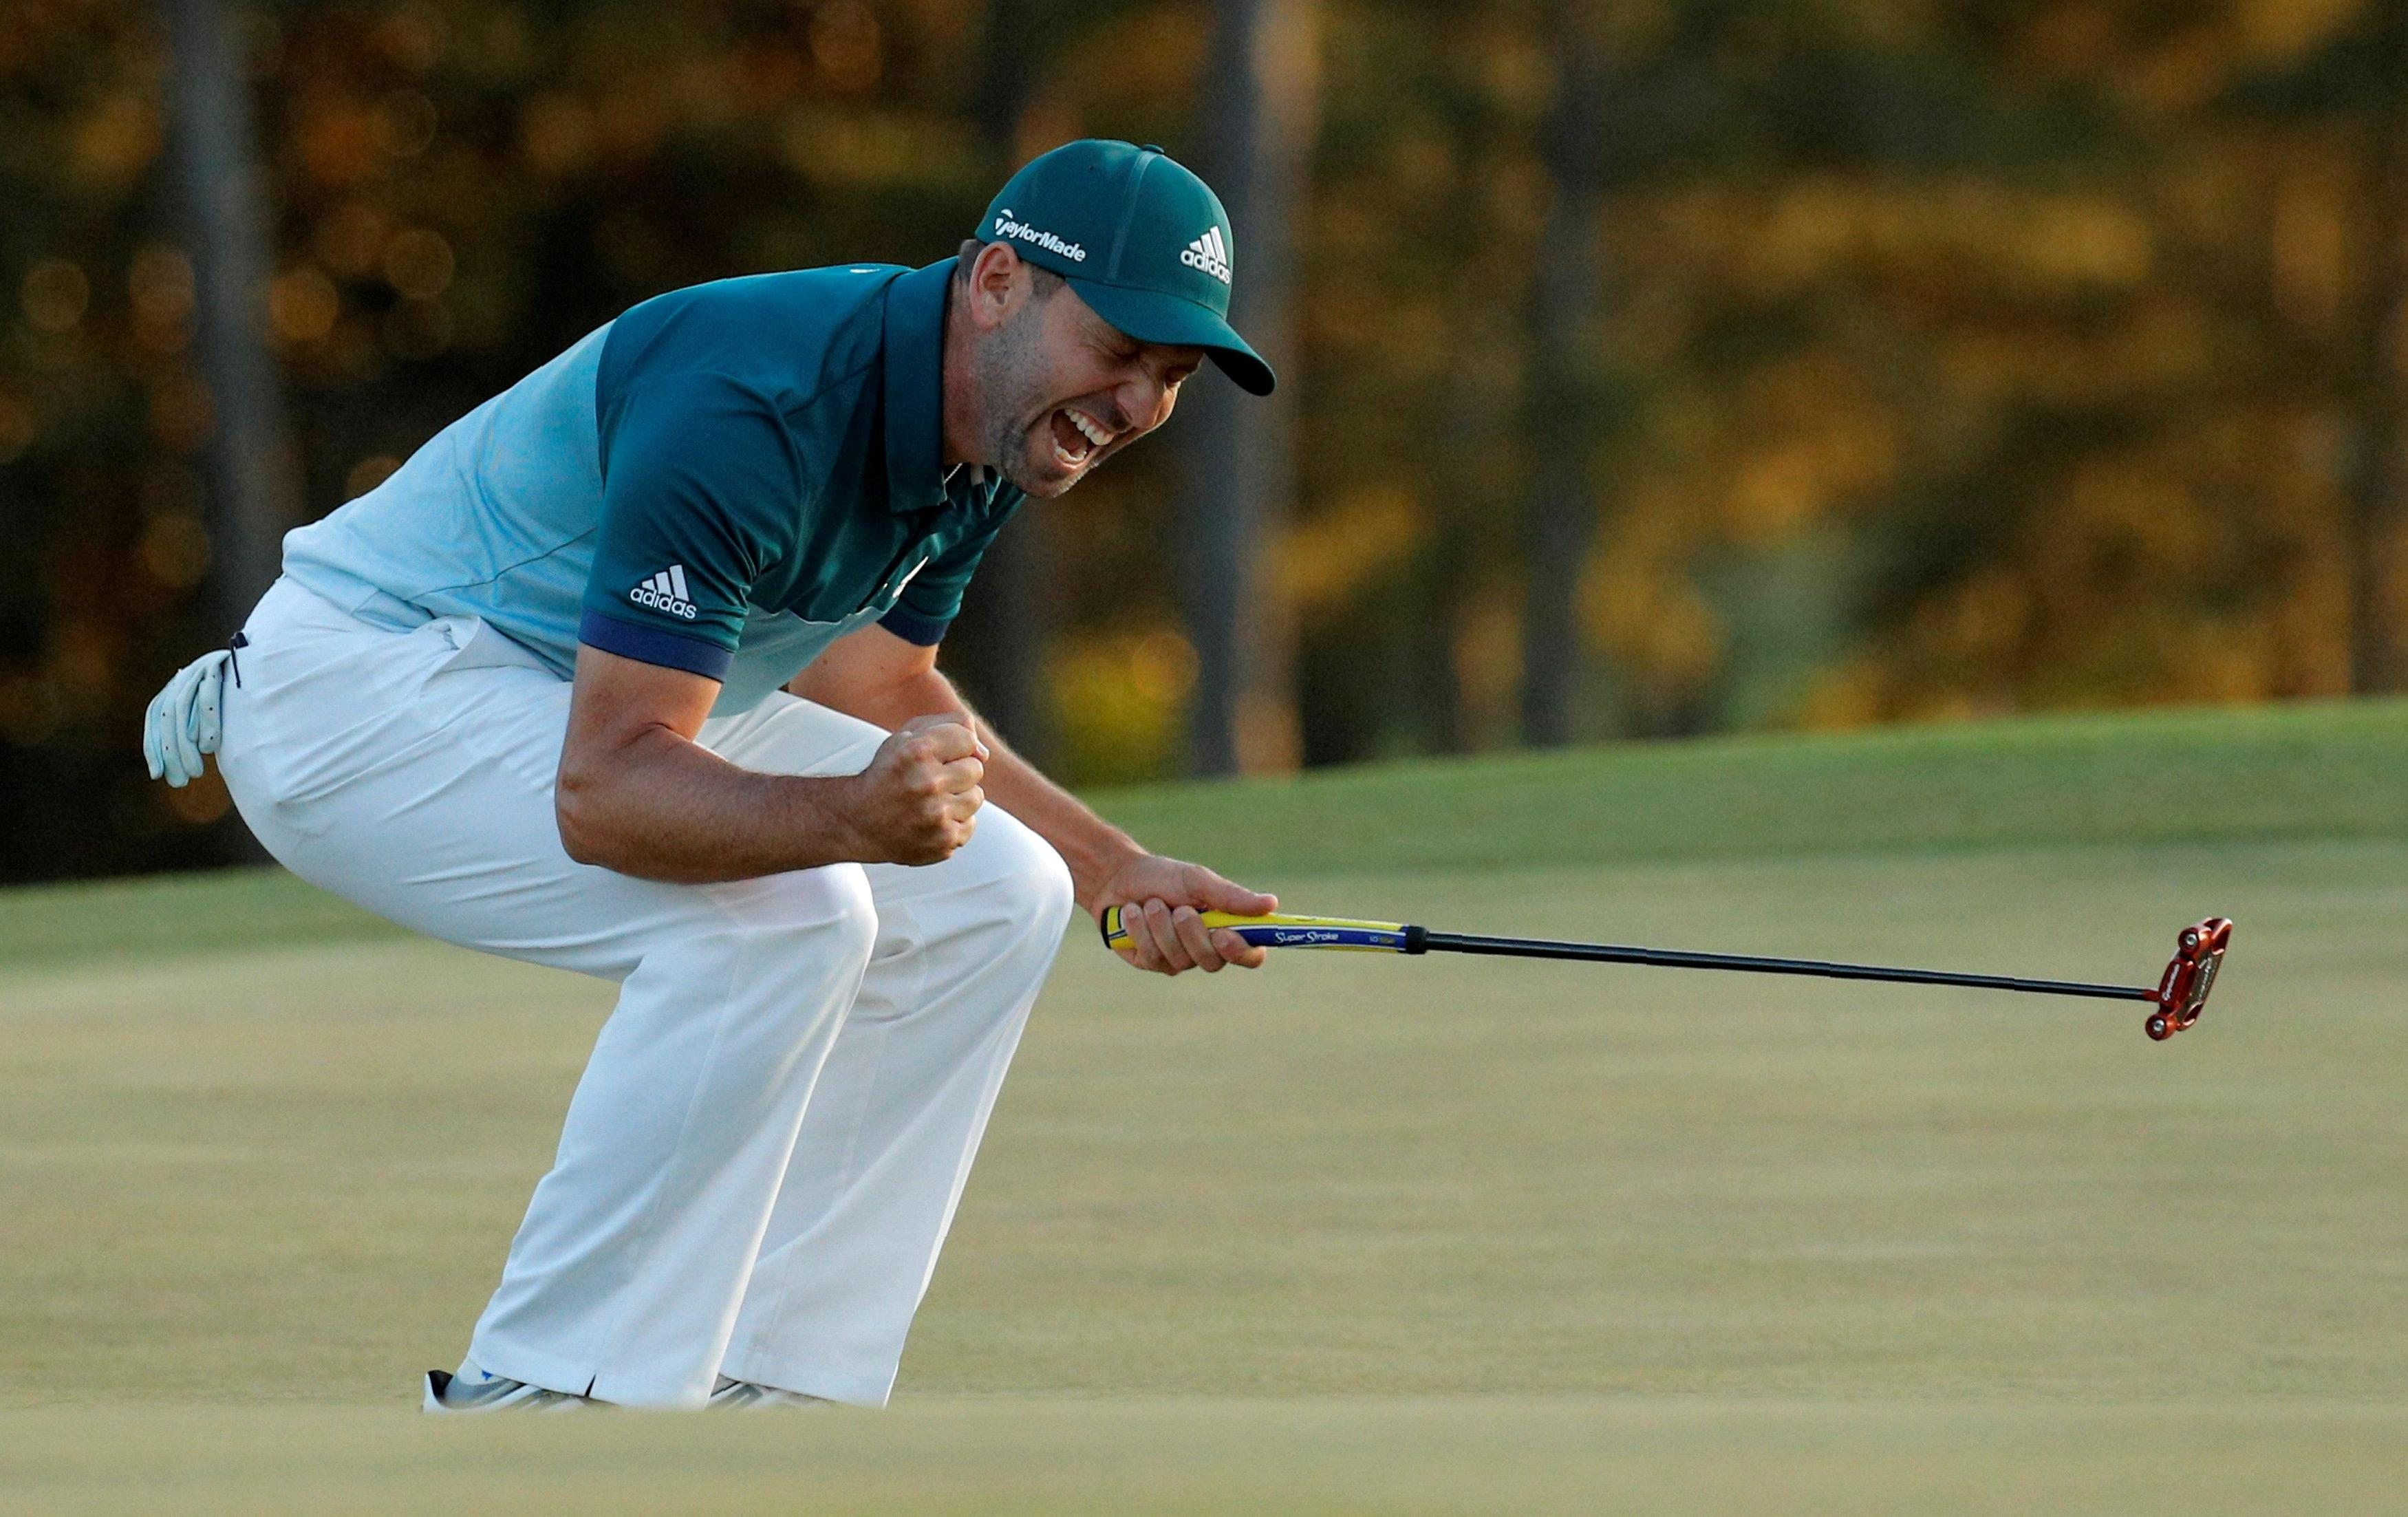 Sergio Garcia finally ended his Major drought in last year's Masters